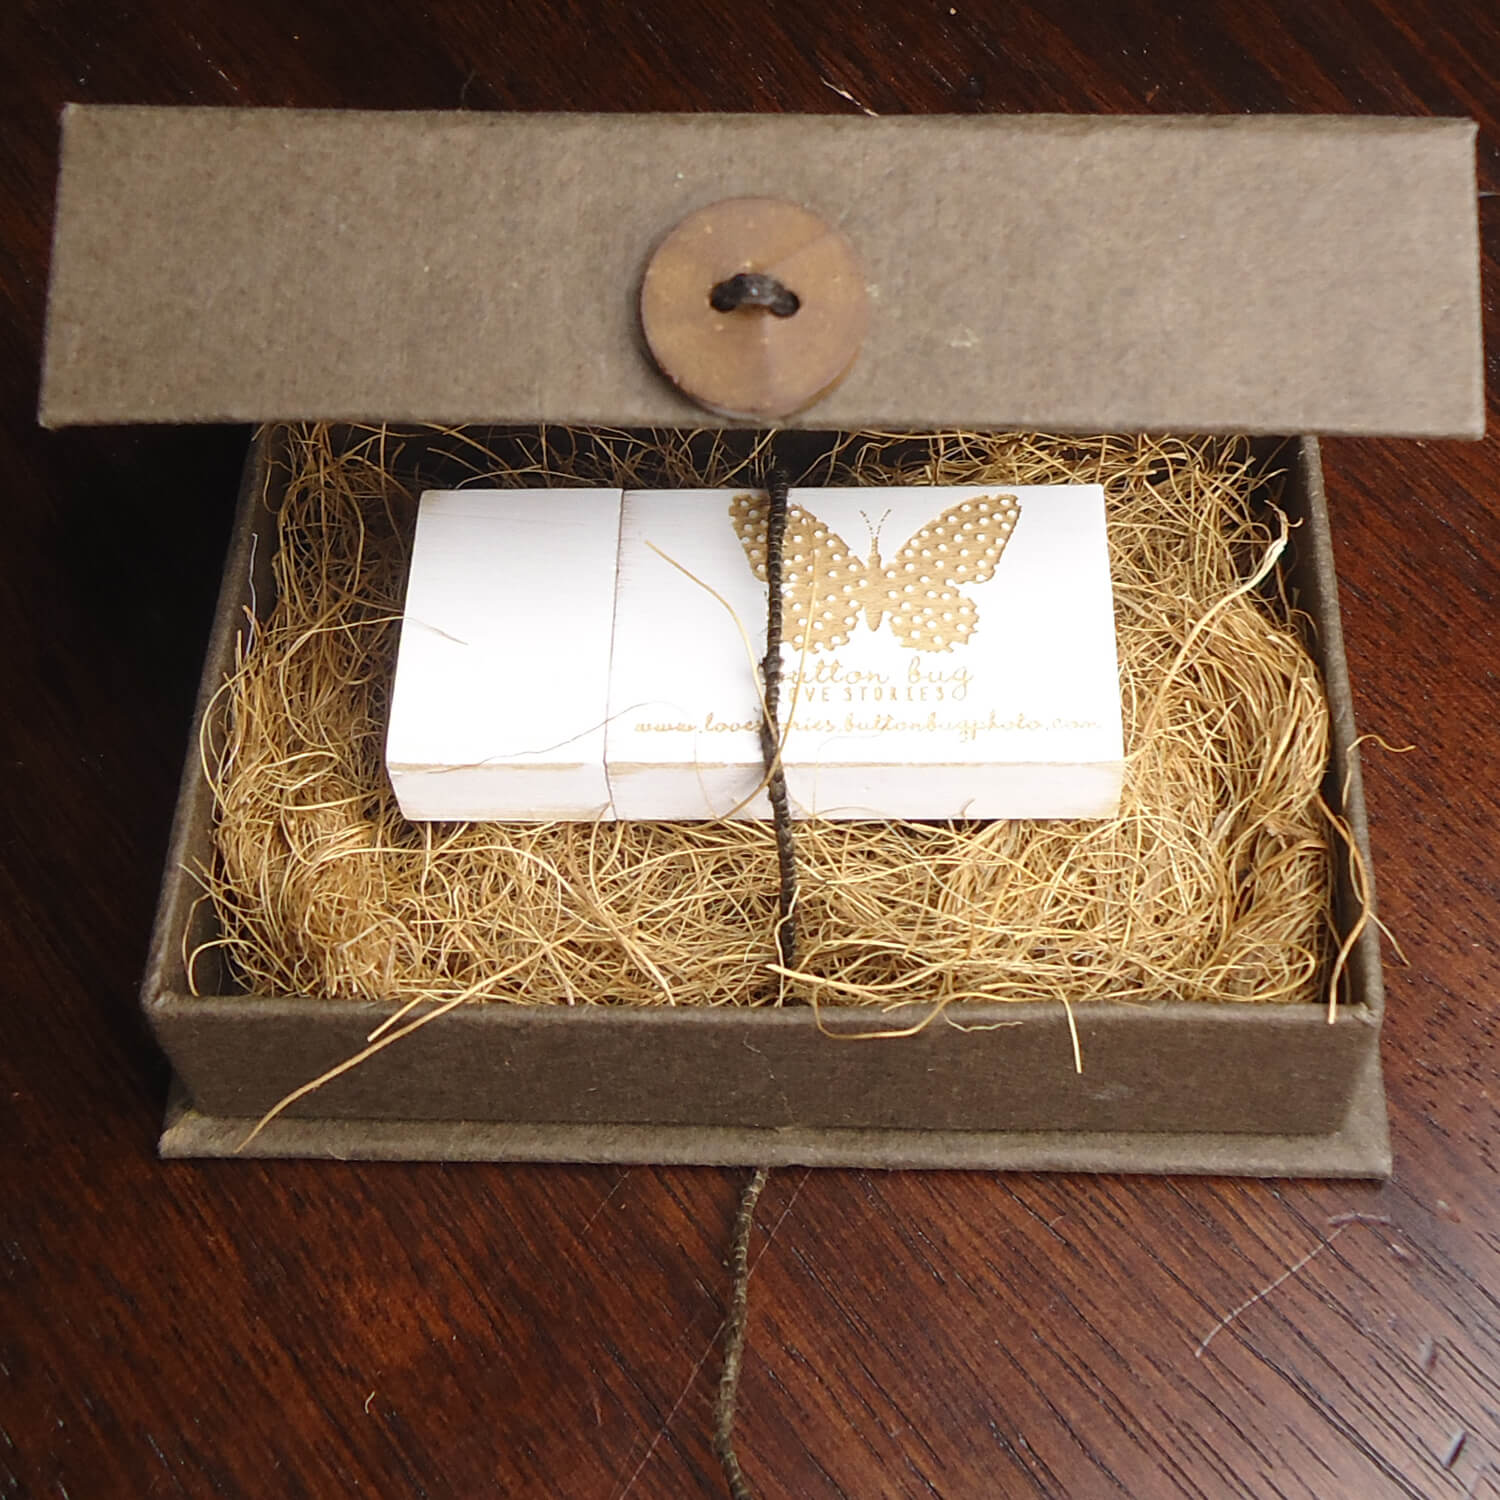 KAVA Flash Drive Box + Vintage White Flash Drive Bundle